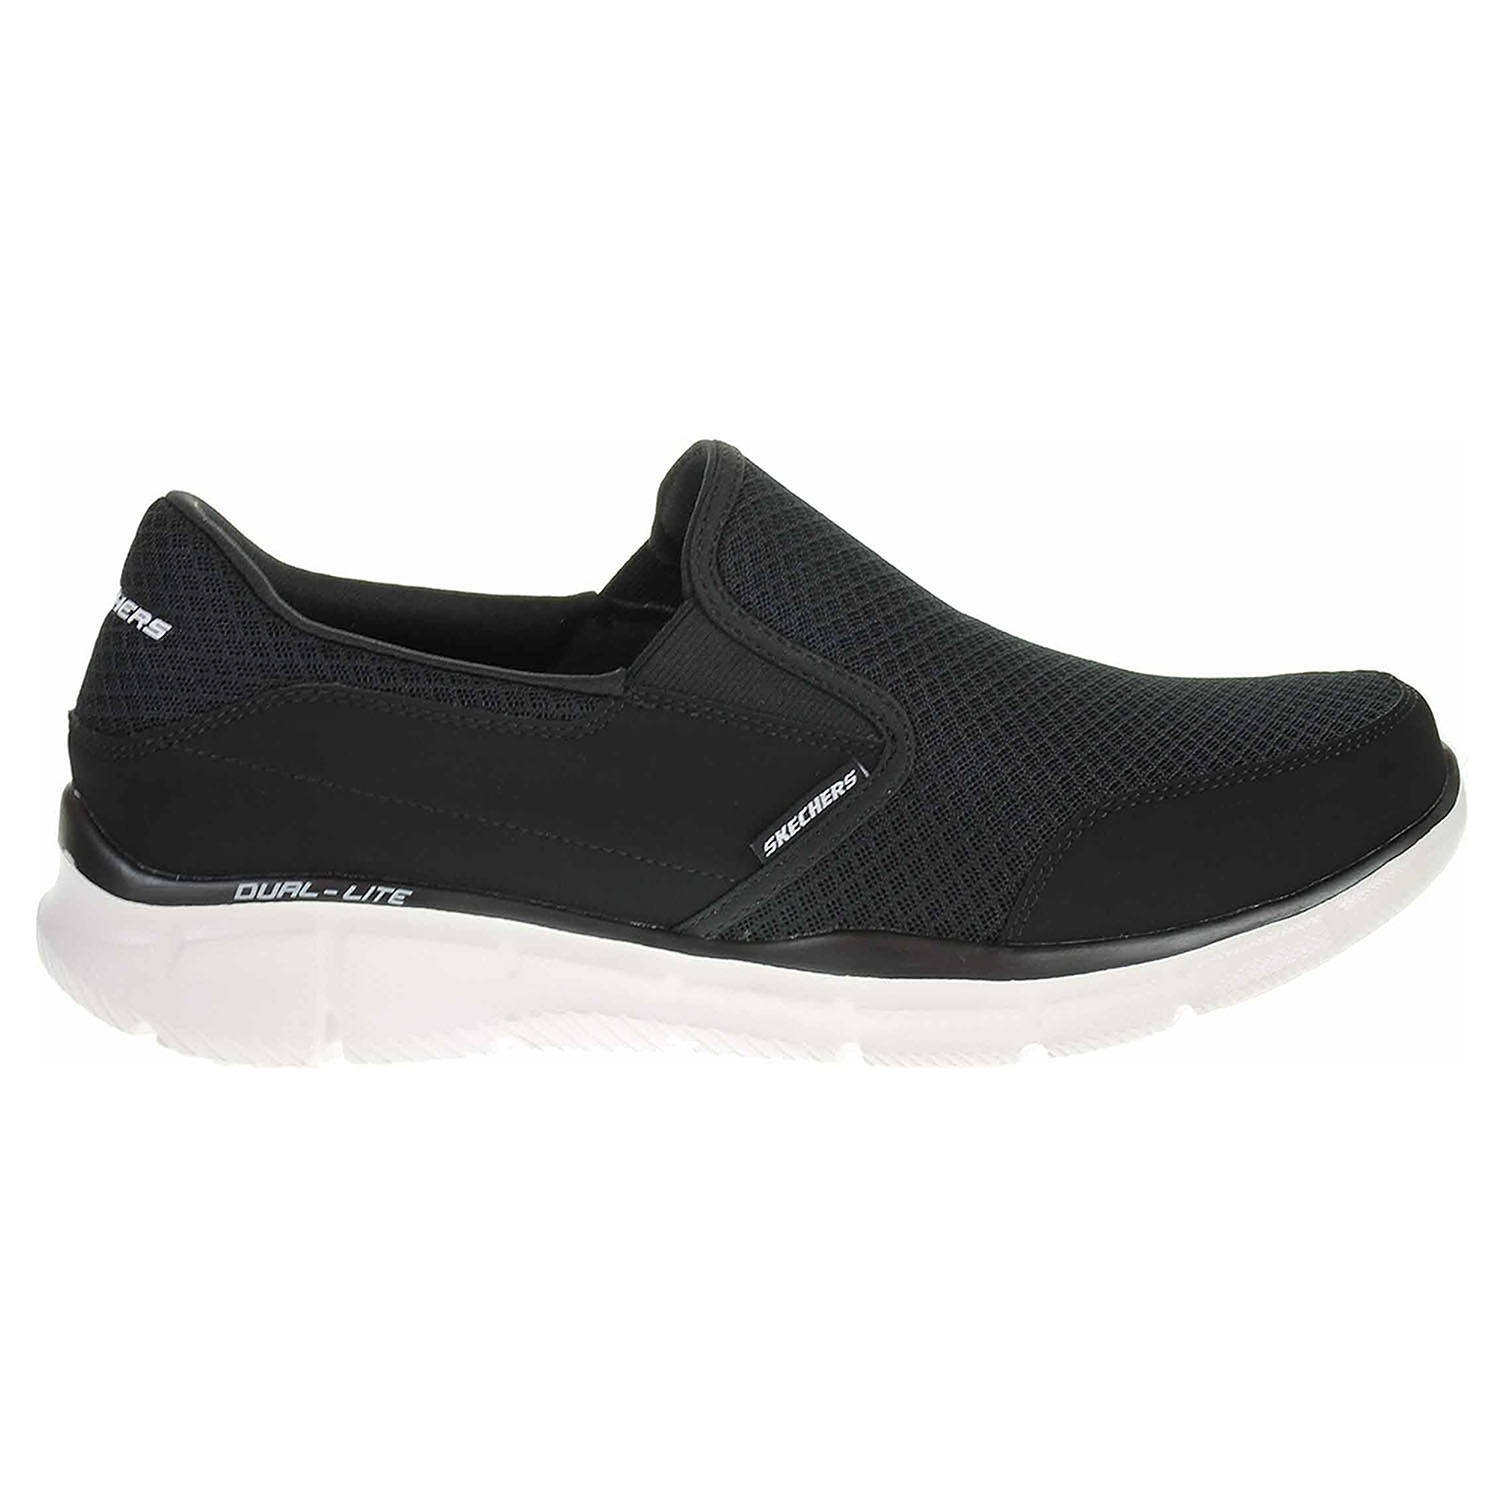 Skechers Persistent black-white